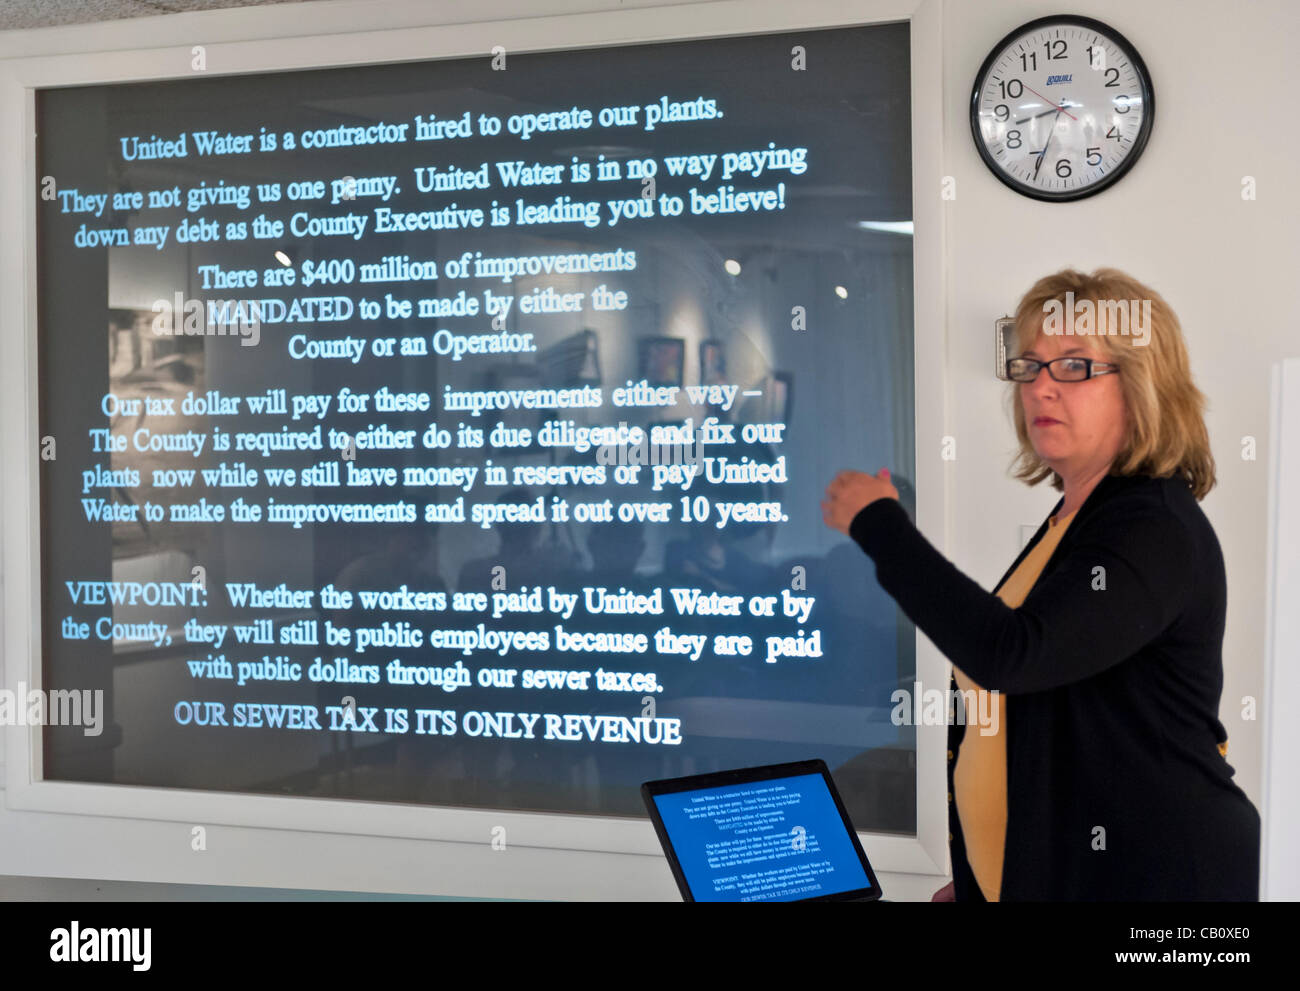 Speaking against Nassau County Executive's Plan to Privatize Sewage Treatment Plants are Claudia Borecky (shown) - Stock Image